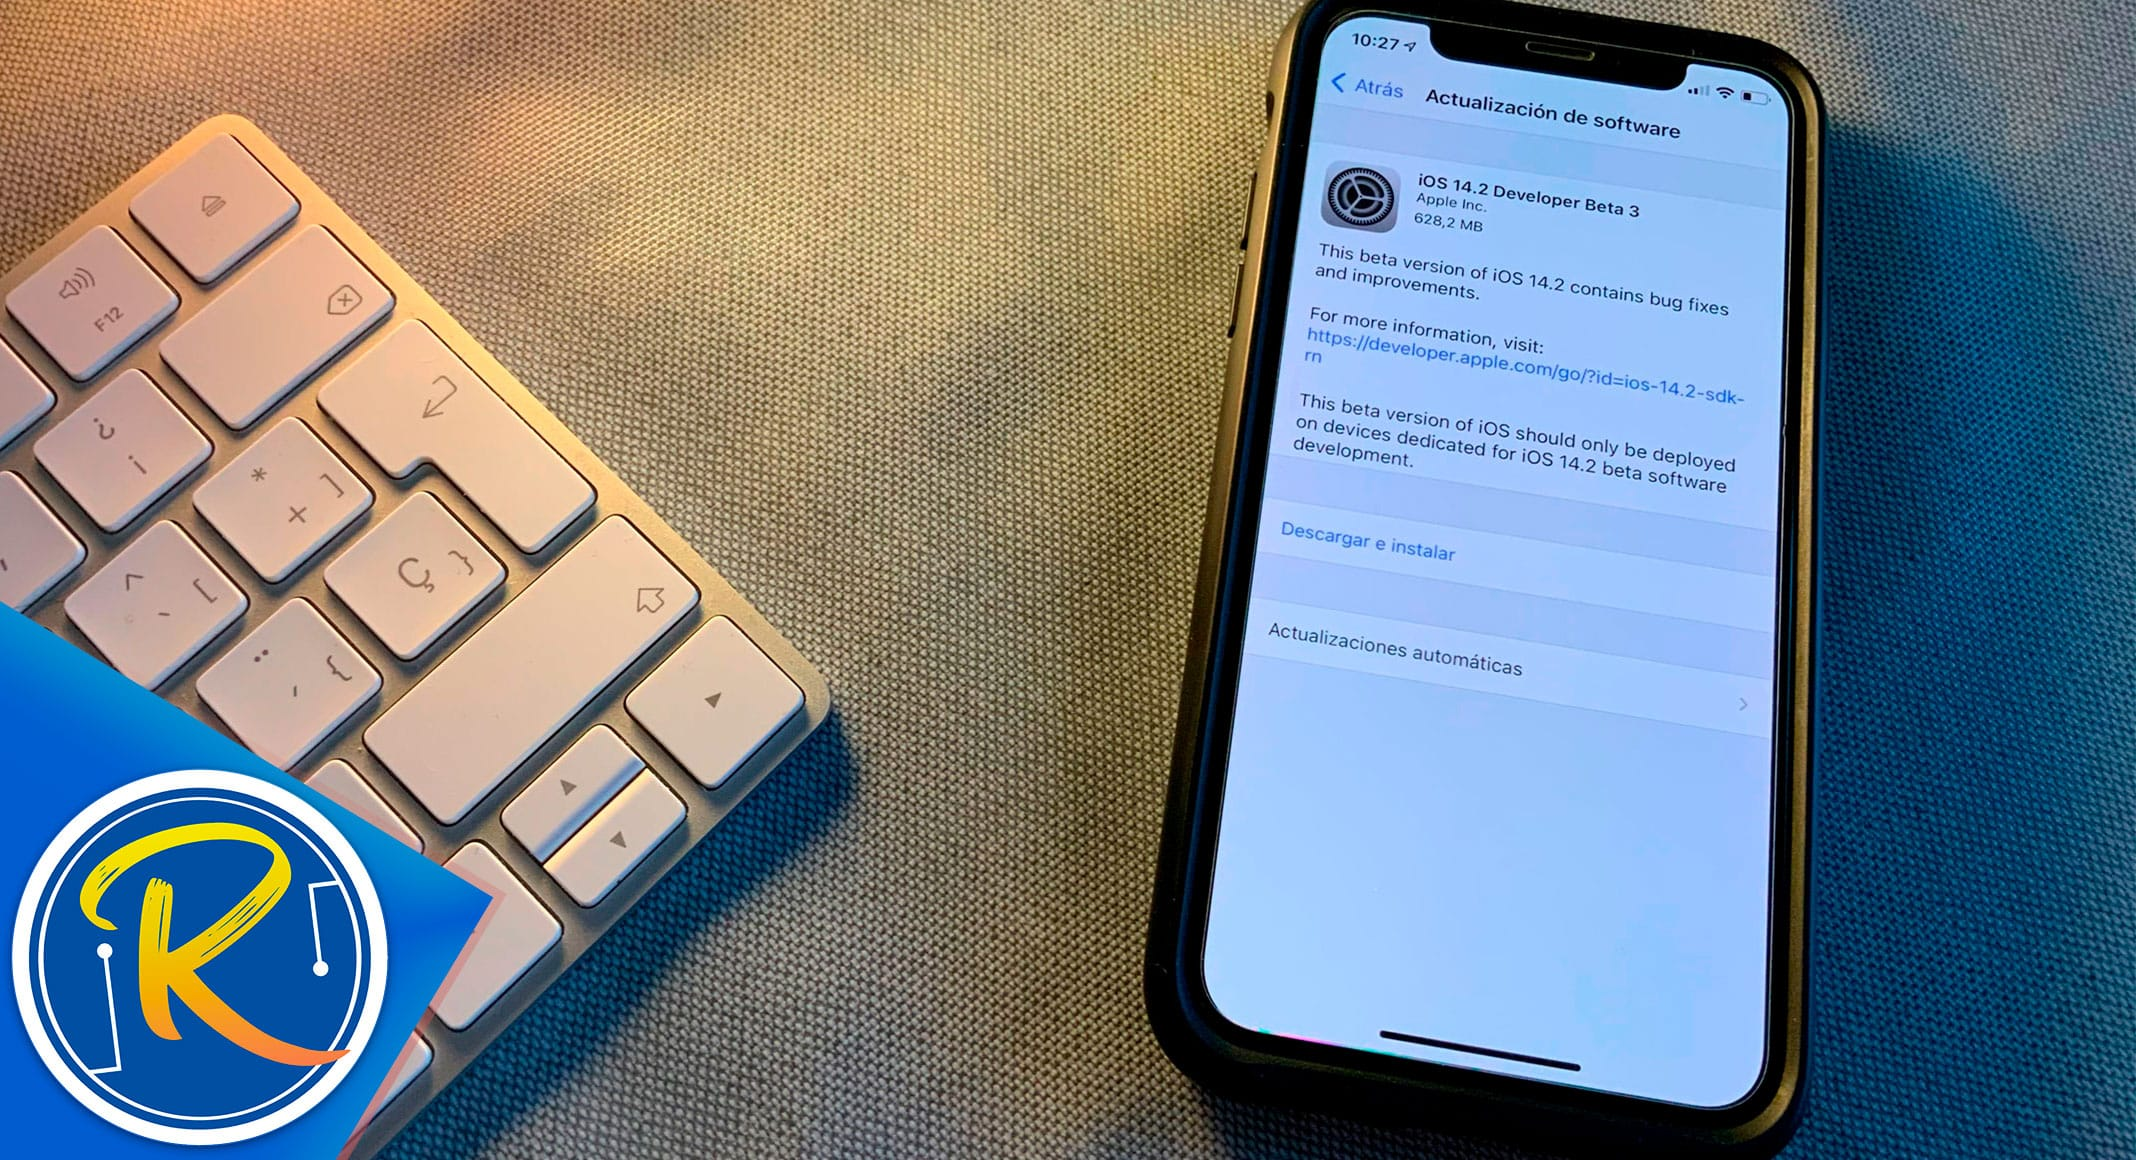 iOS 14.2 Developer Beta 3